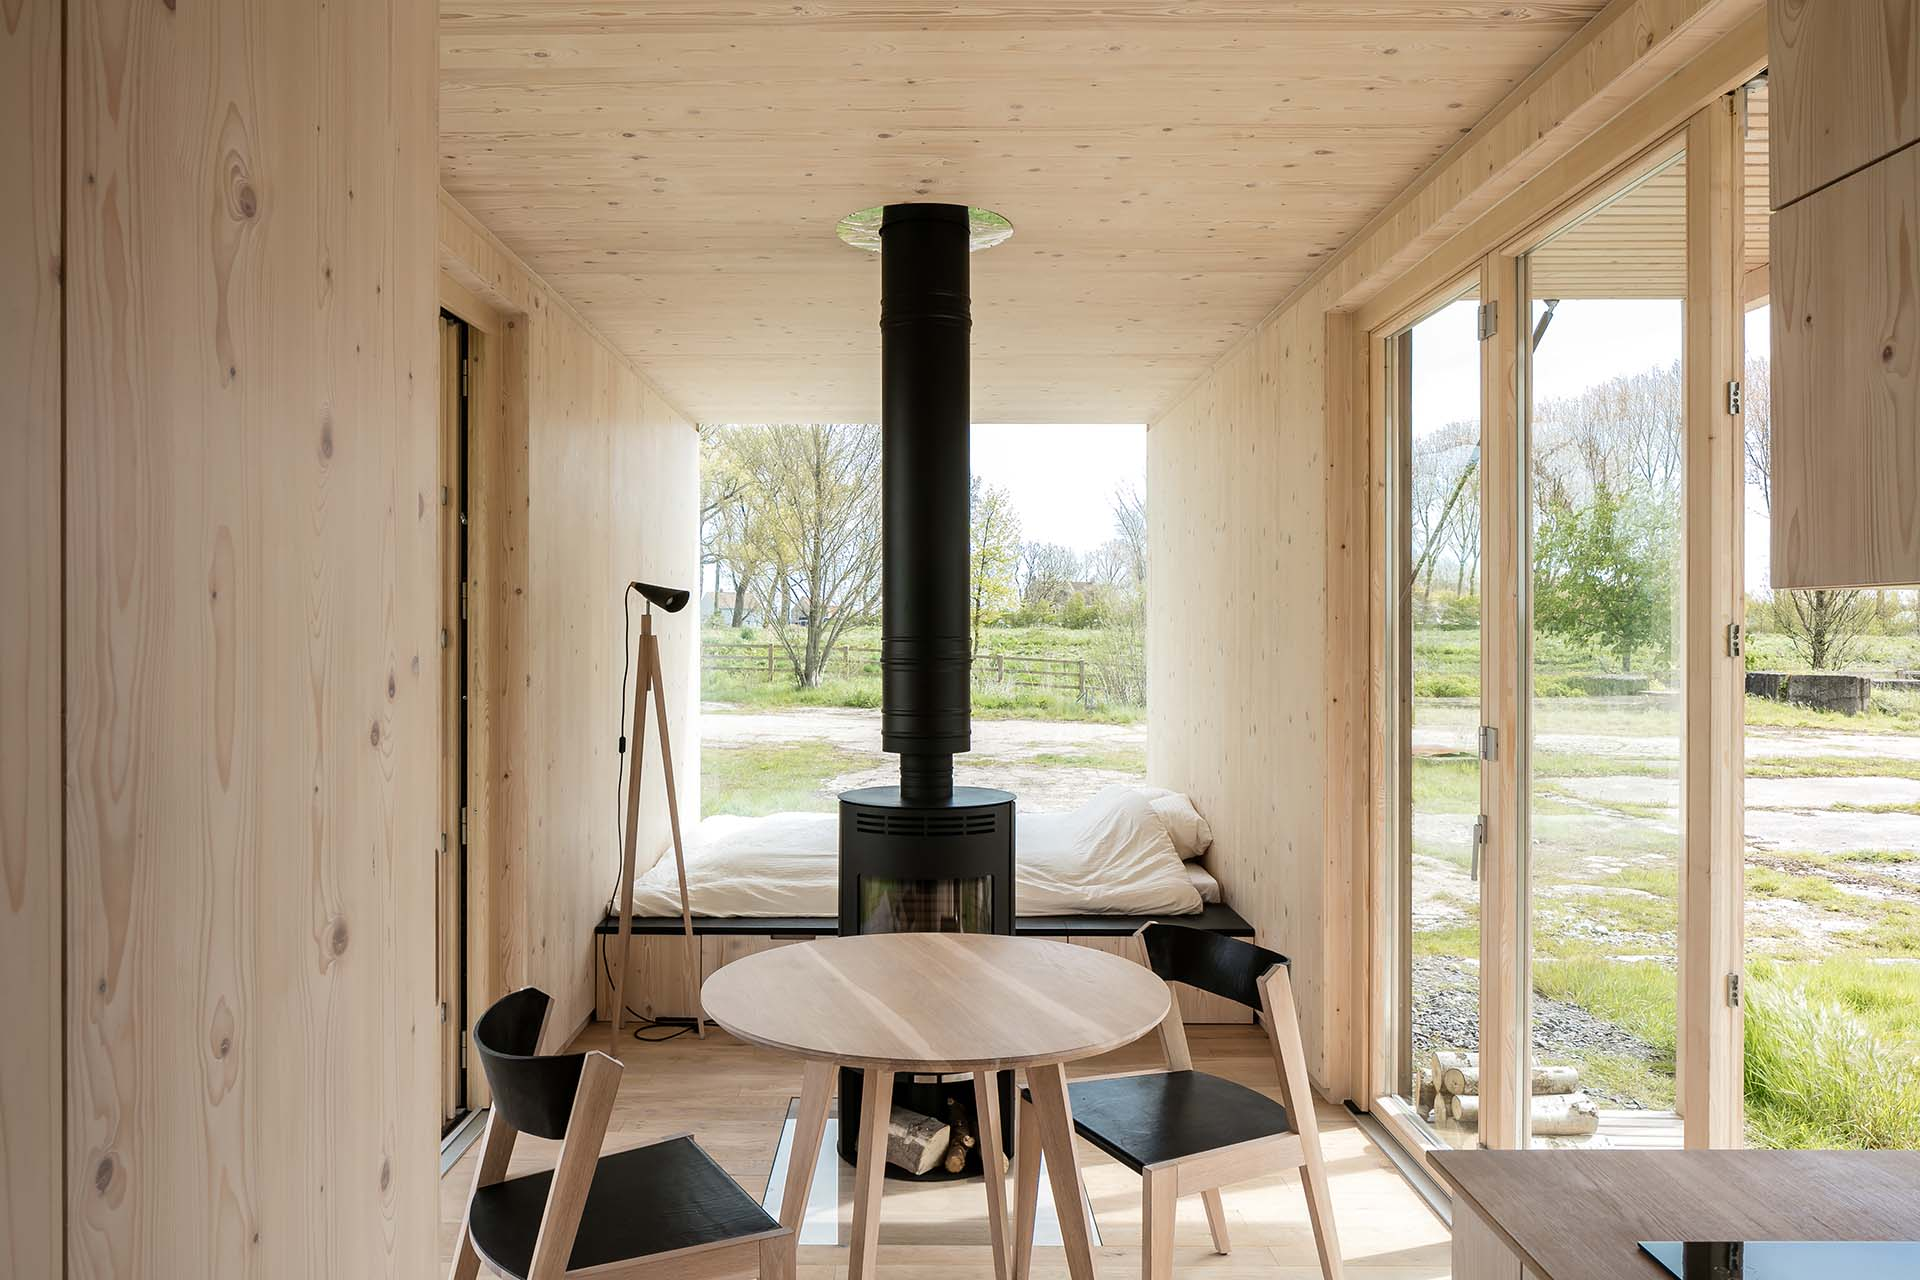 This Prefab Tiny House Is Simplicity At Its Most Chic